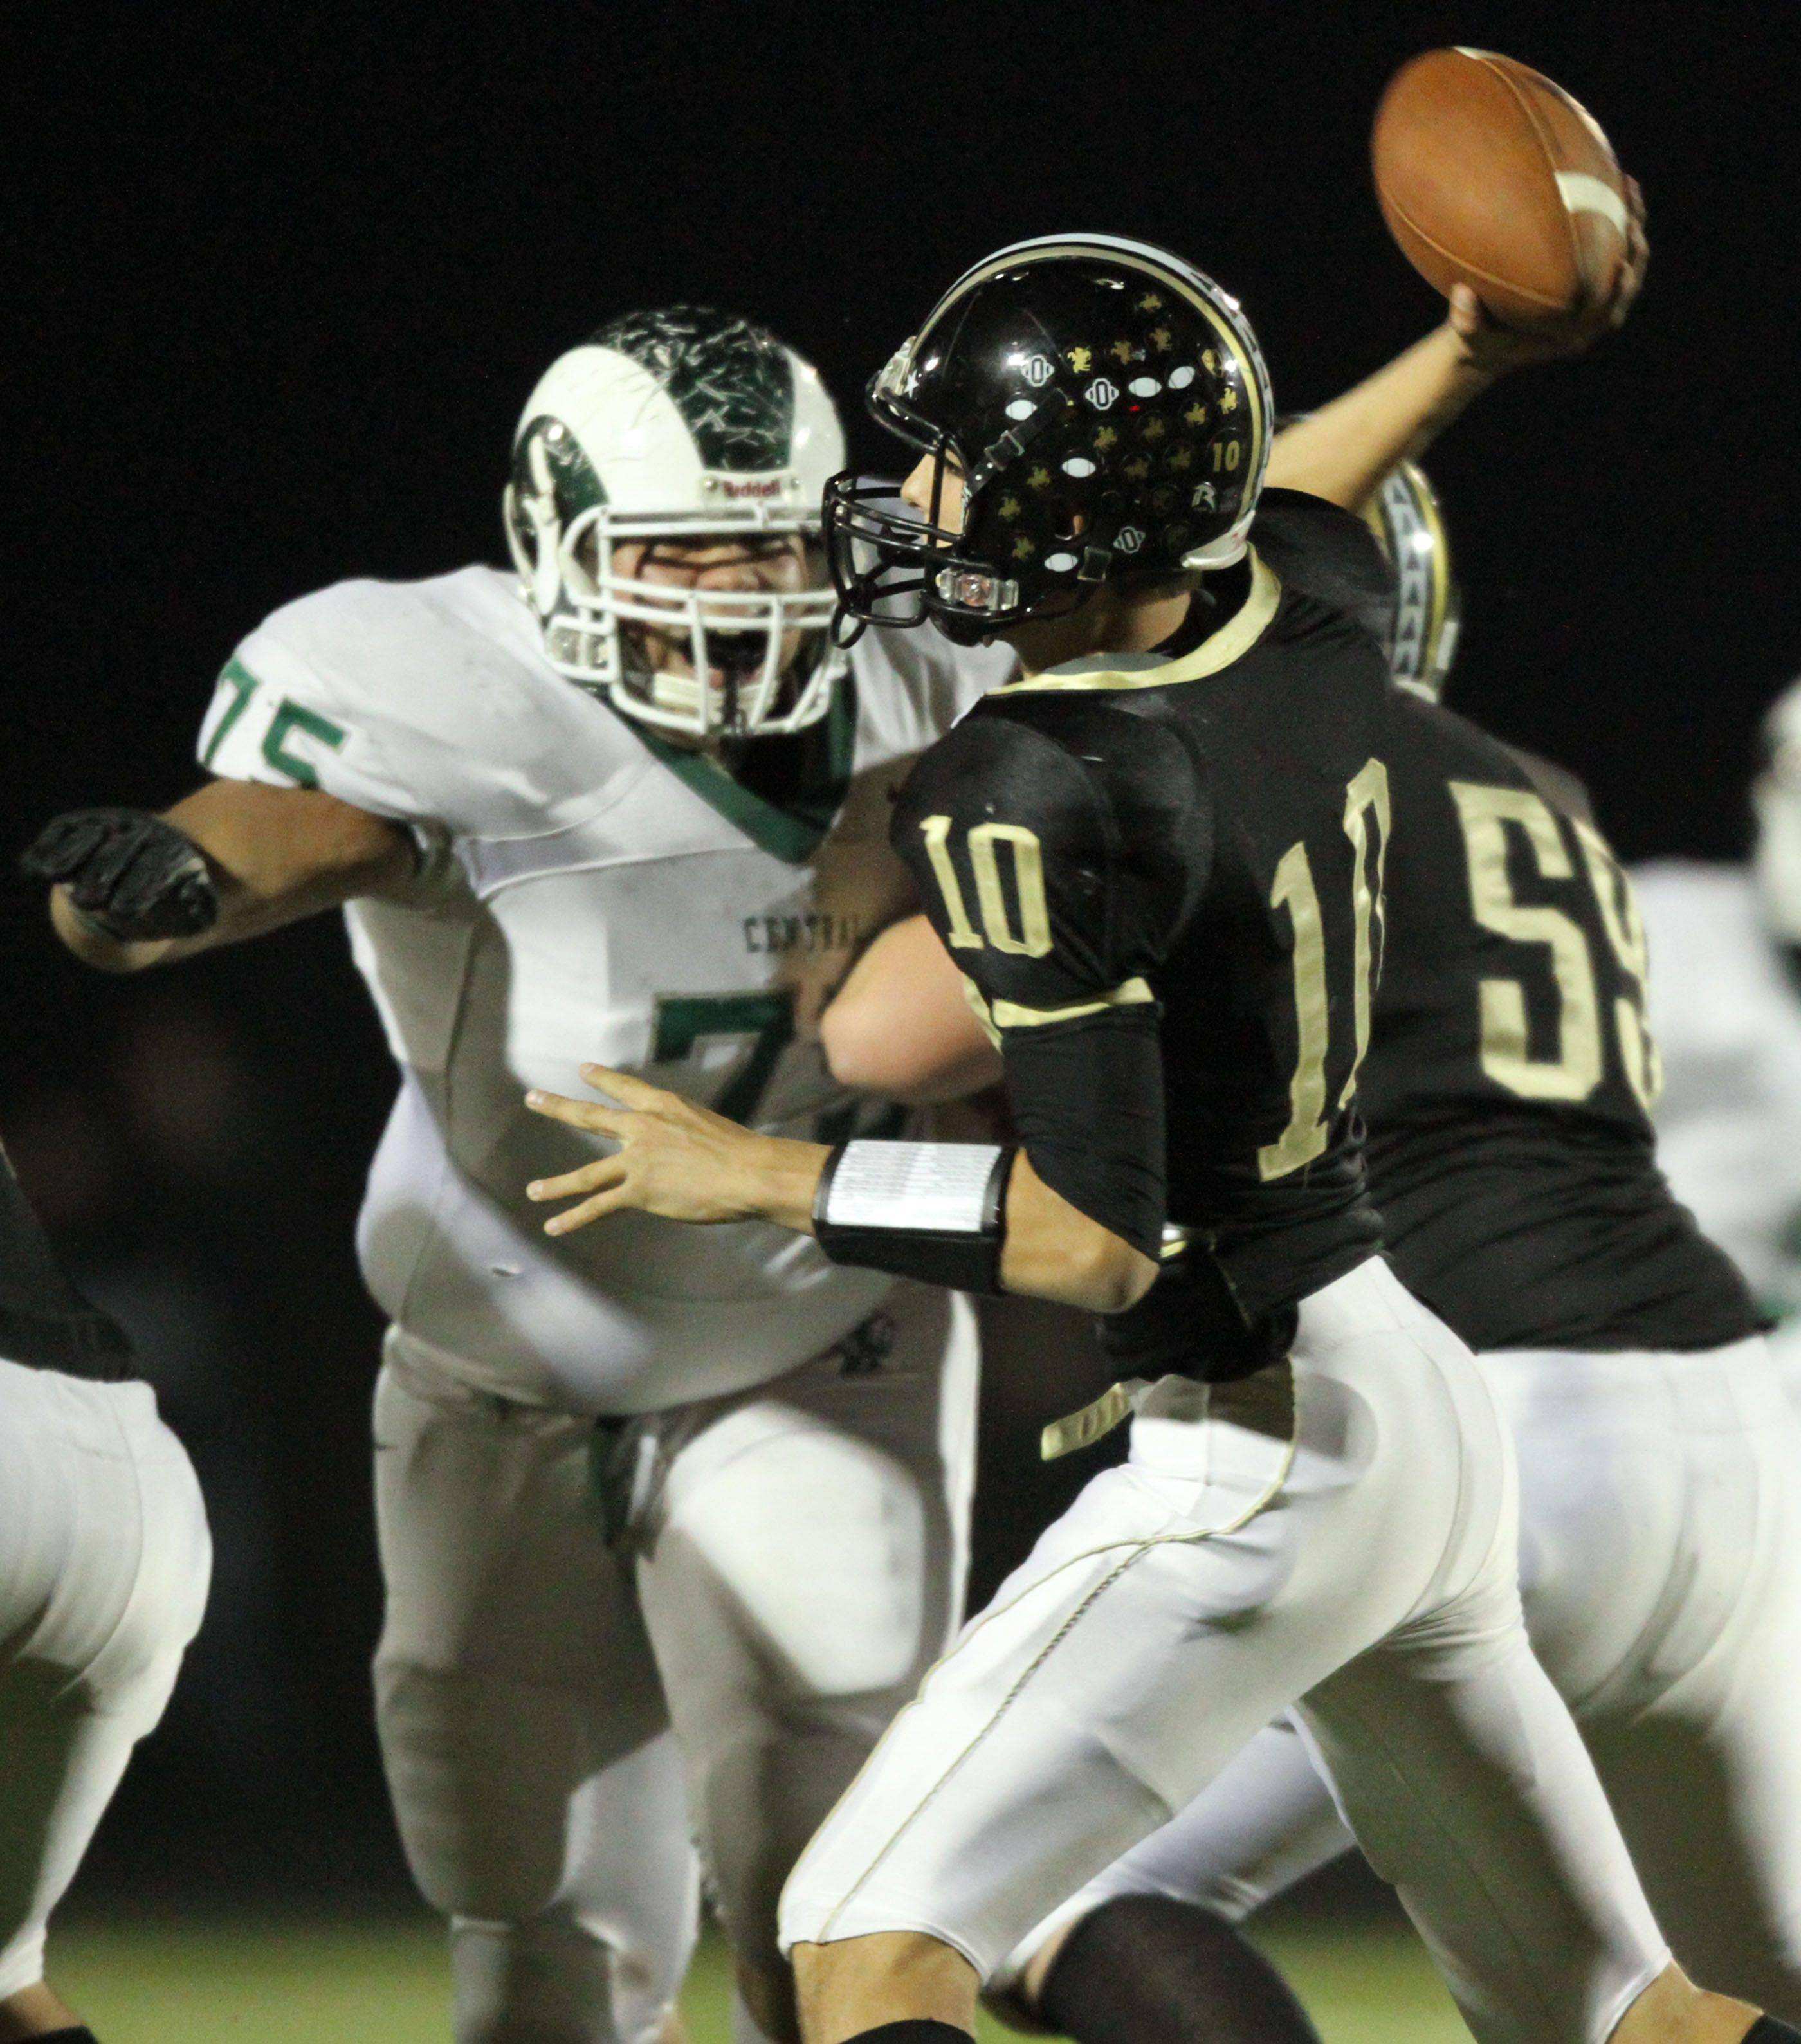 Grayslake North quarterback and strong all-around athlete A.J. Fish returns to direct the Knights' offense this fall.